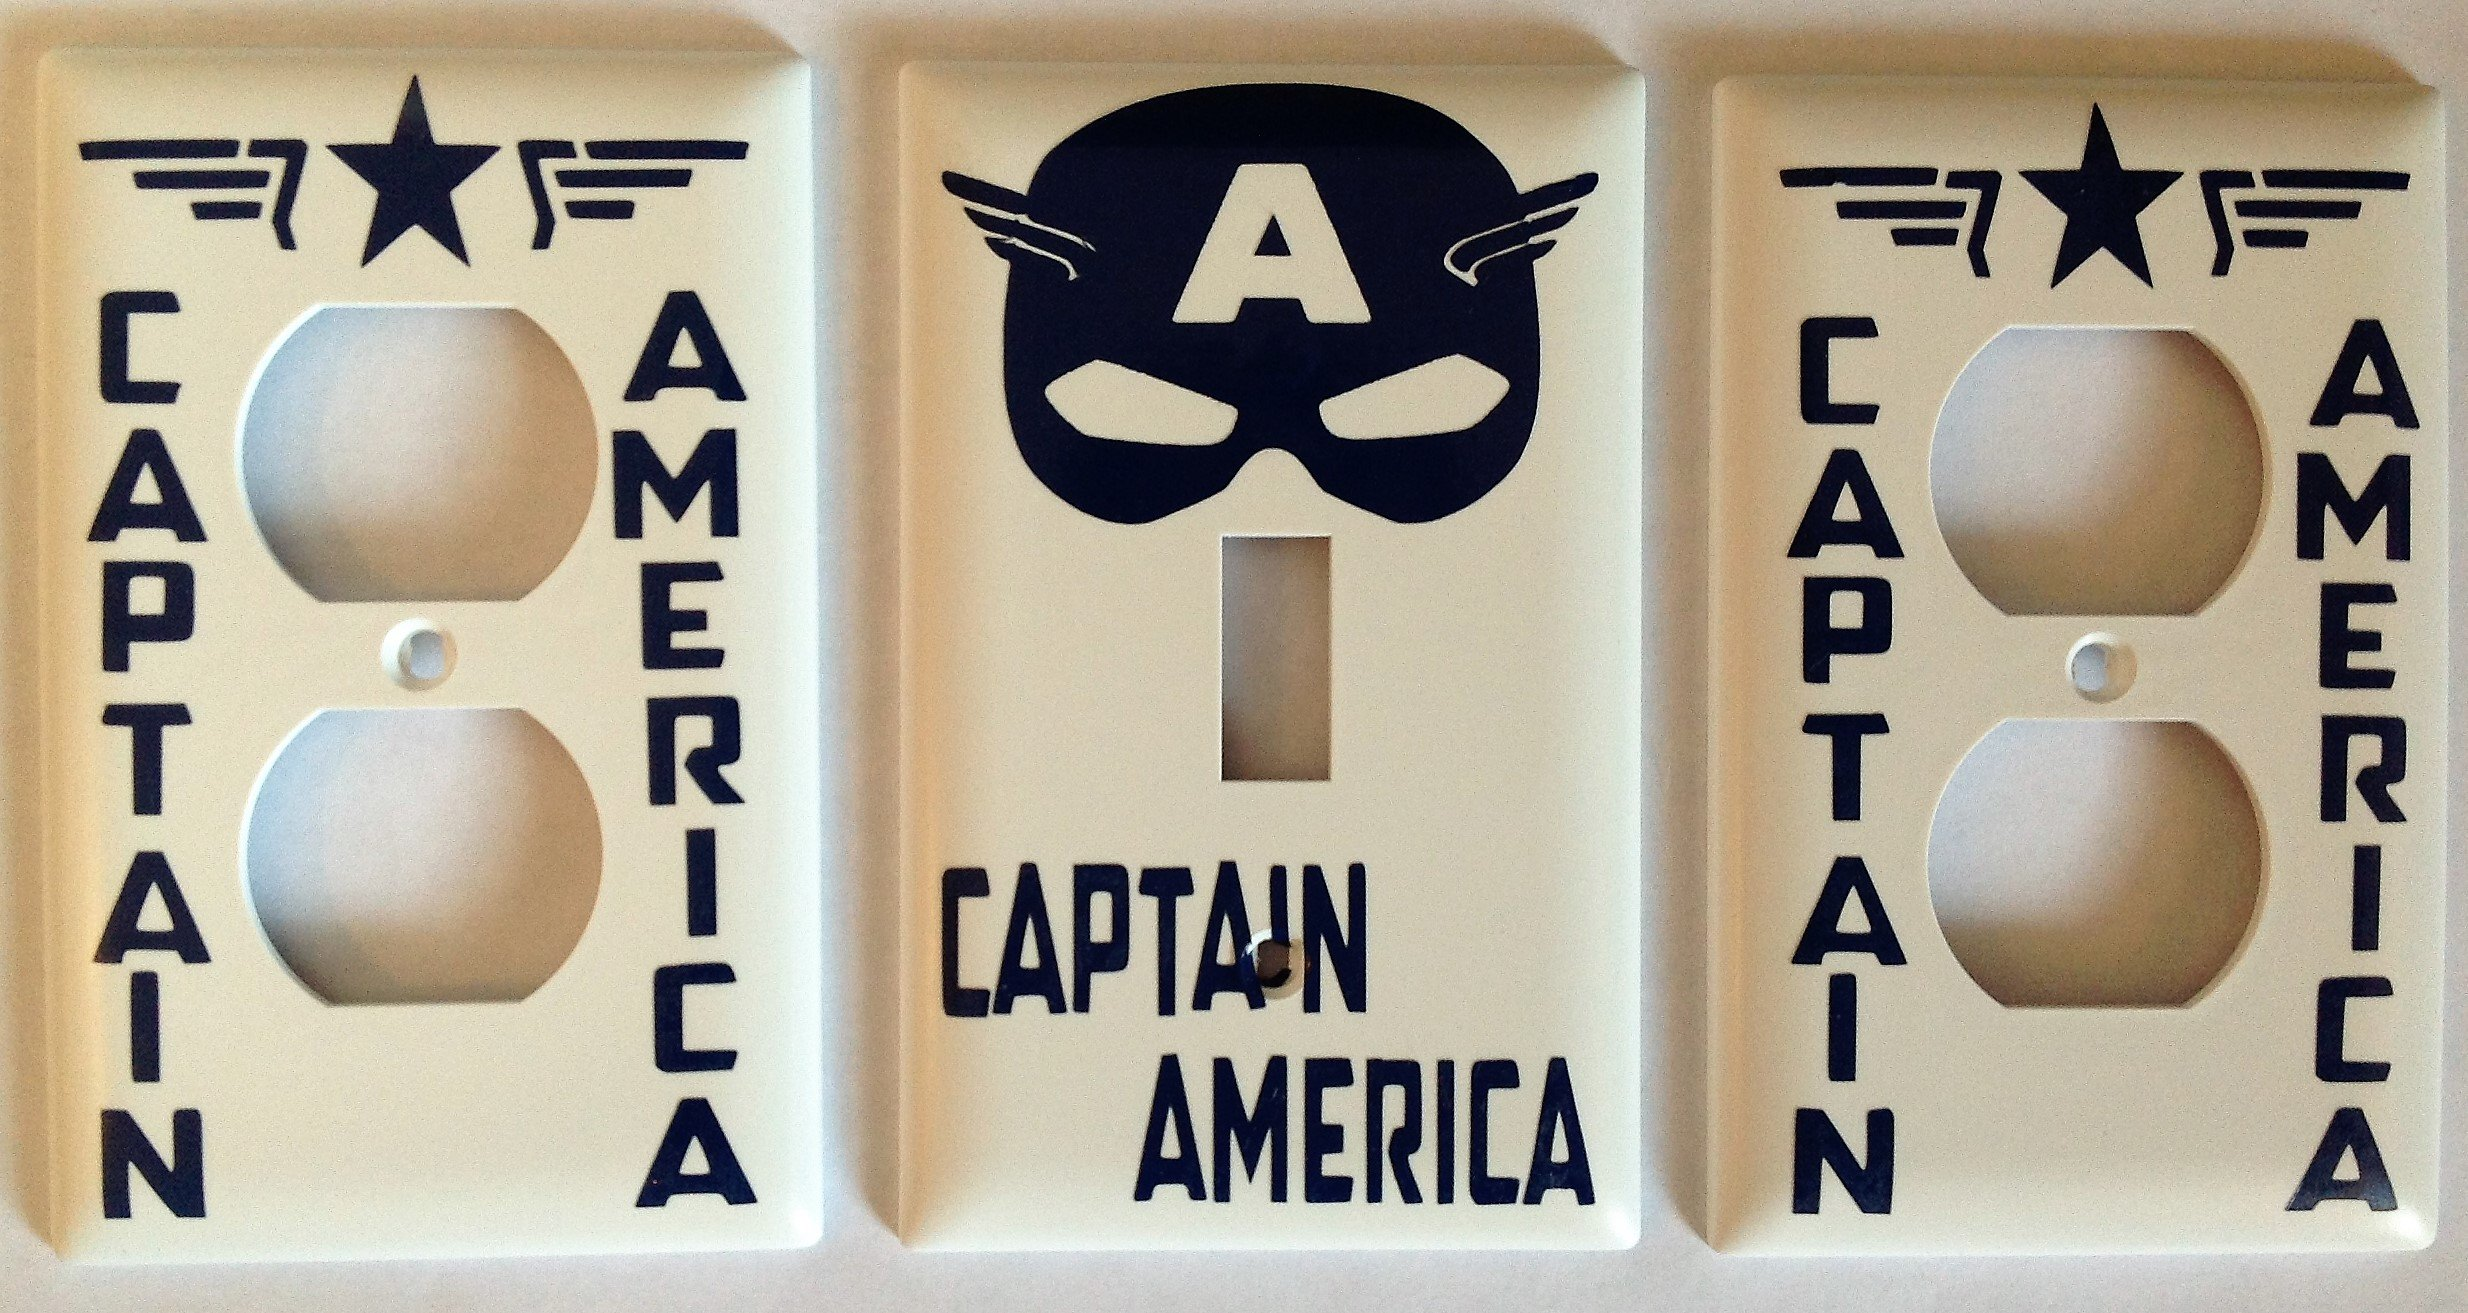 Captain America Switch plate /Outlet Cover